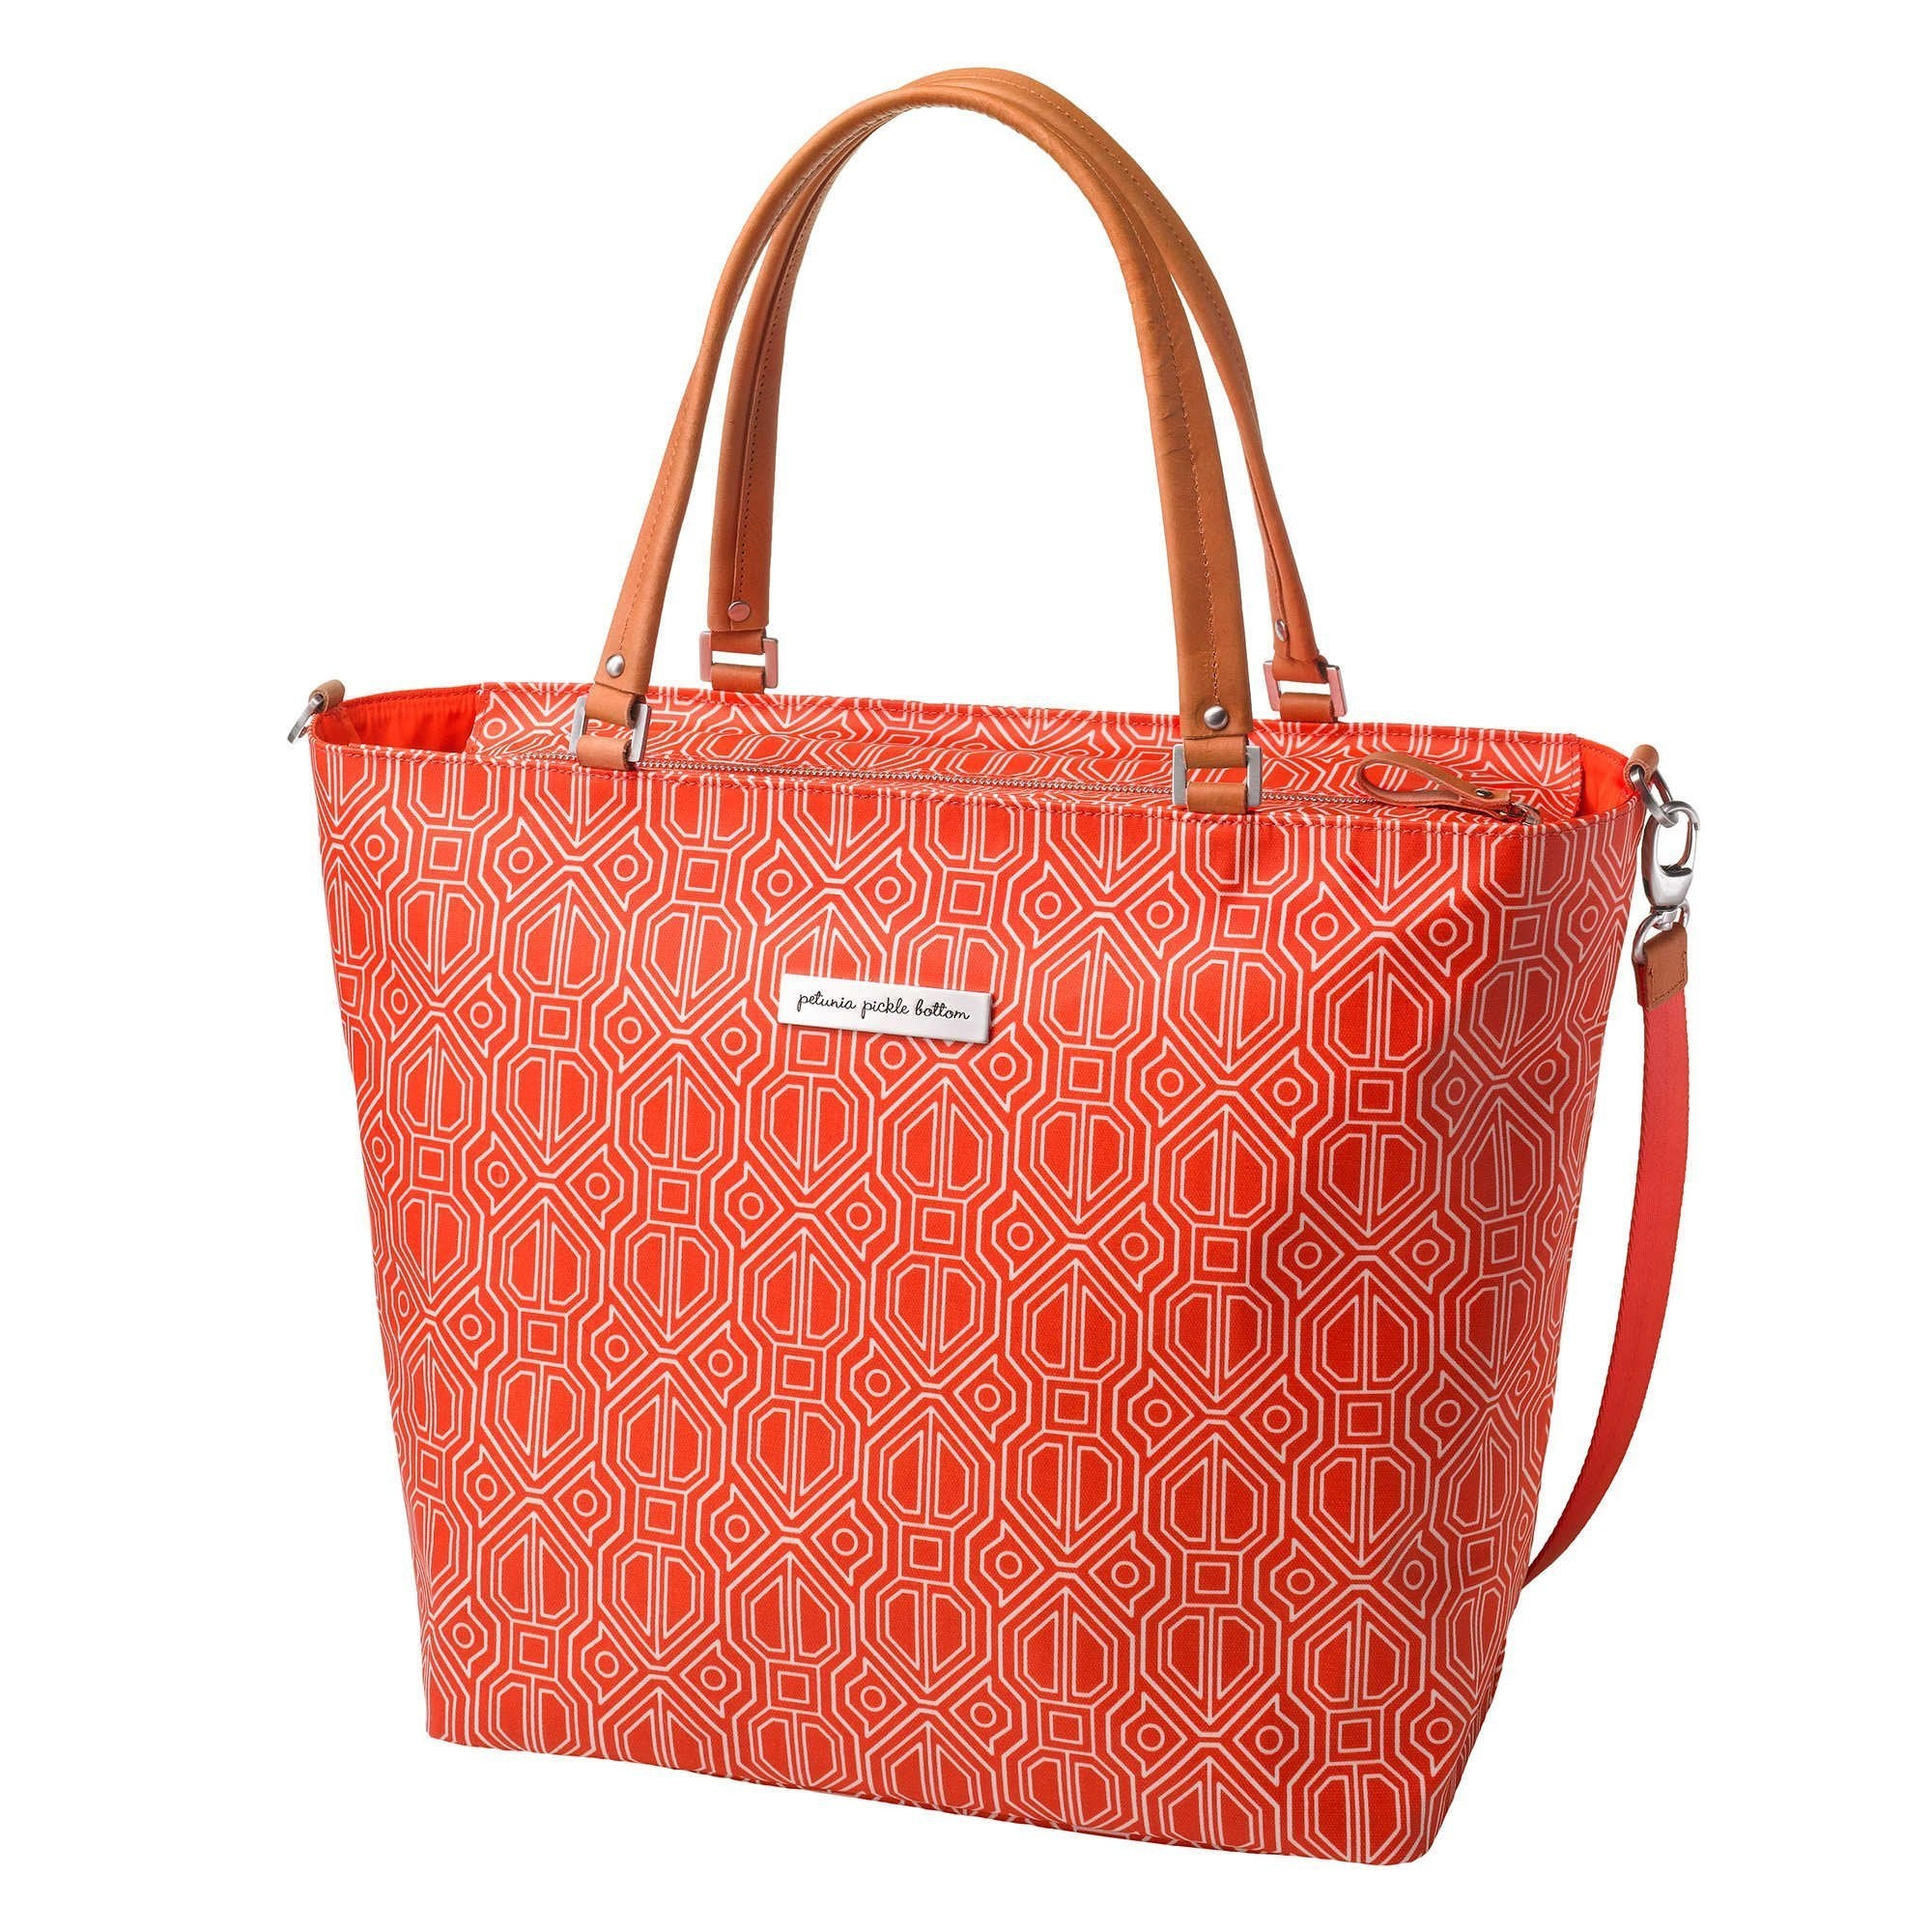 Altogether Tote Diaper Bags | Petunia Pickle Bottom-Diaper Bags-Paprika-Jack and Jill Boutique